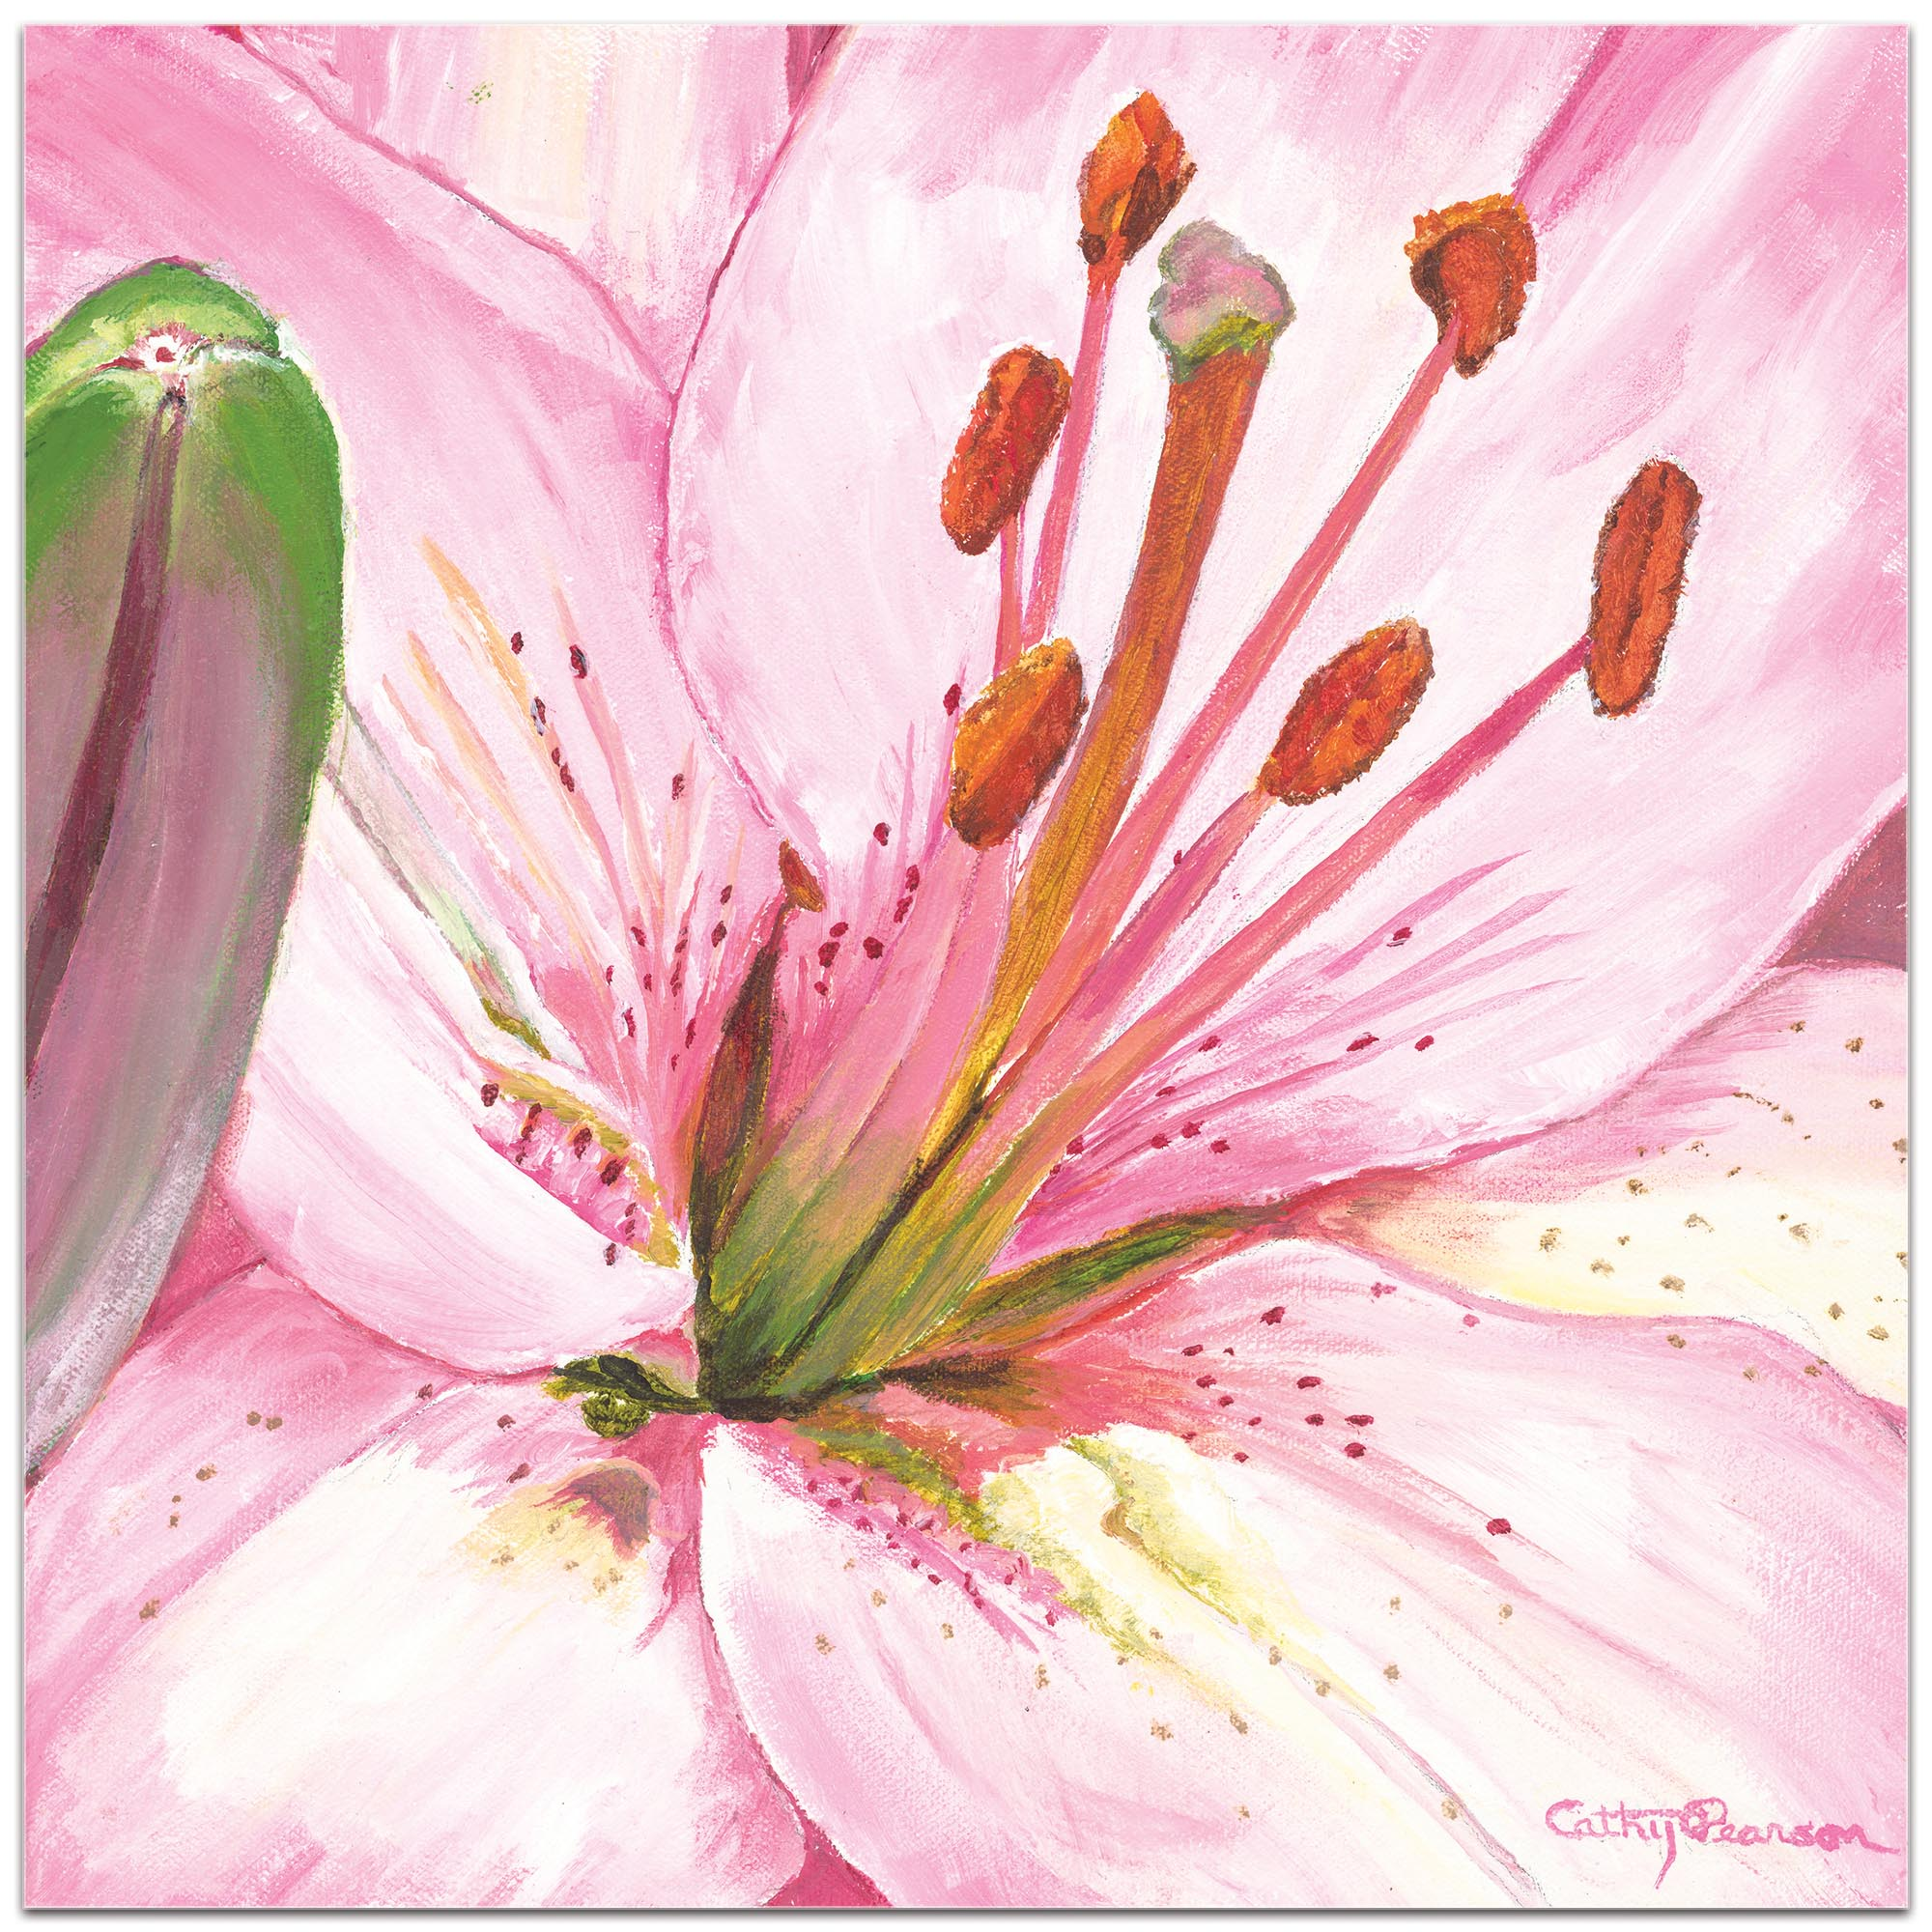 Traditional Wall Art 'Heart of a Pink Lily' - Floral Decor on Metal or Plexiglass - Image 2